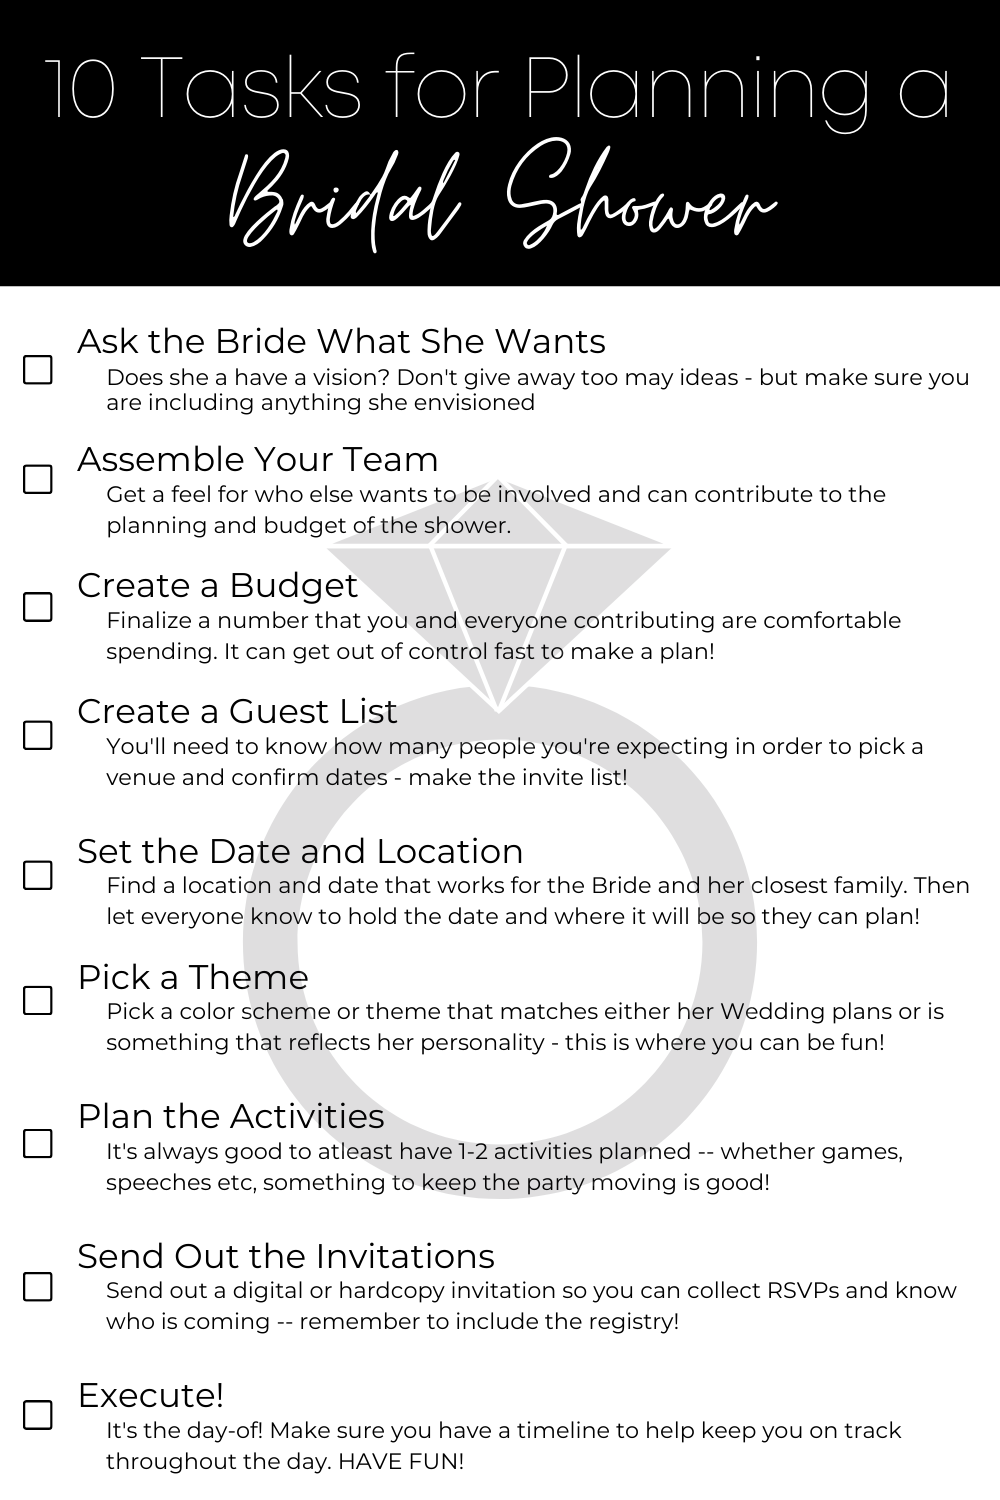 Cheat Sheet for Planning a Bridal Shower